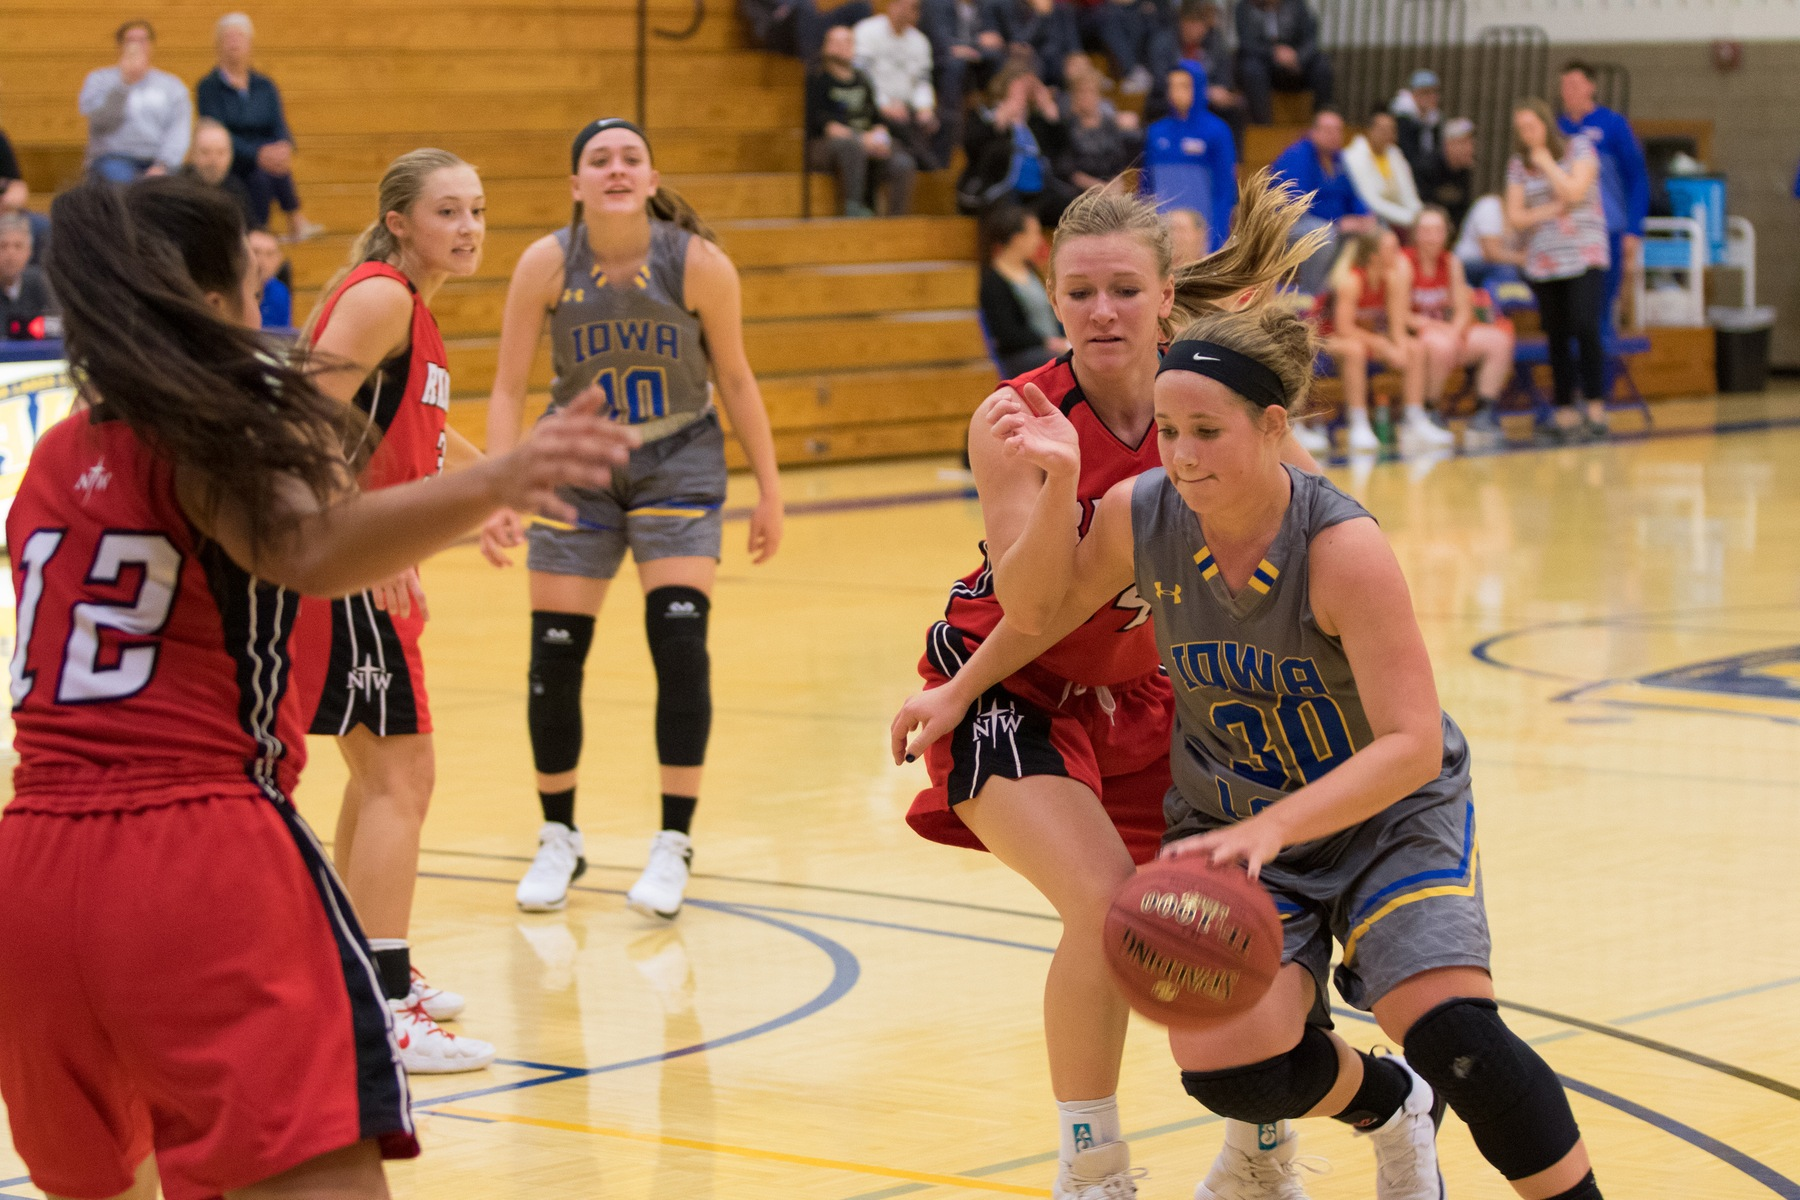 Lakers get Overtime Win Over Mount Marty JV